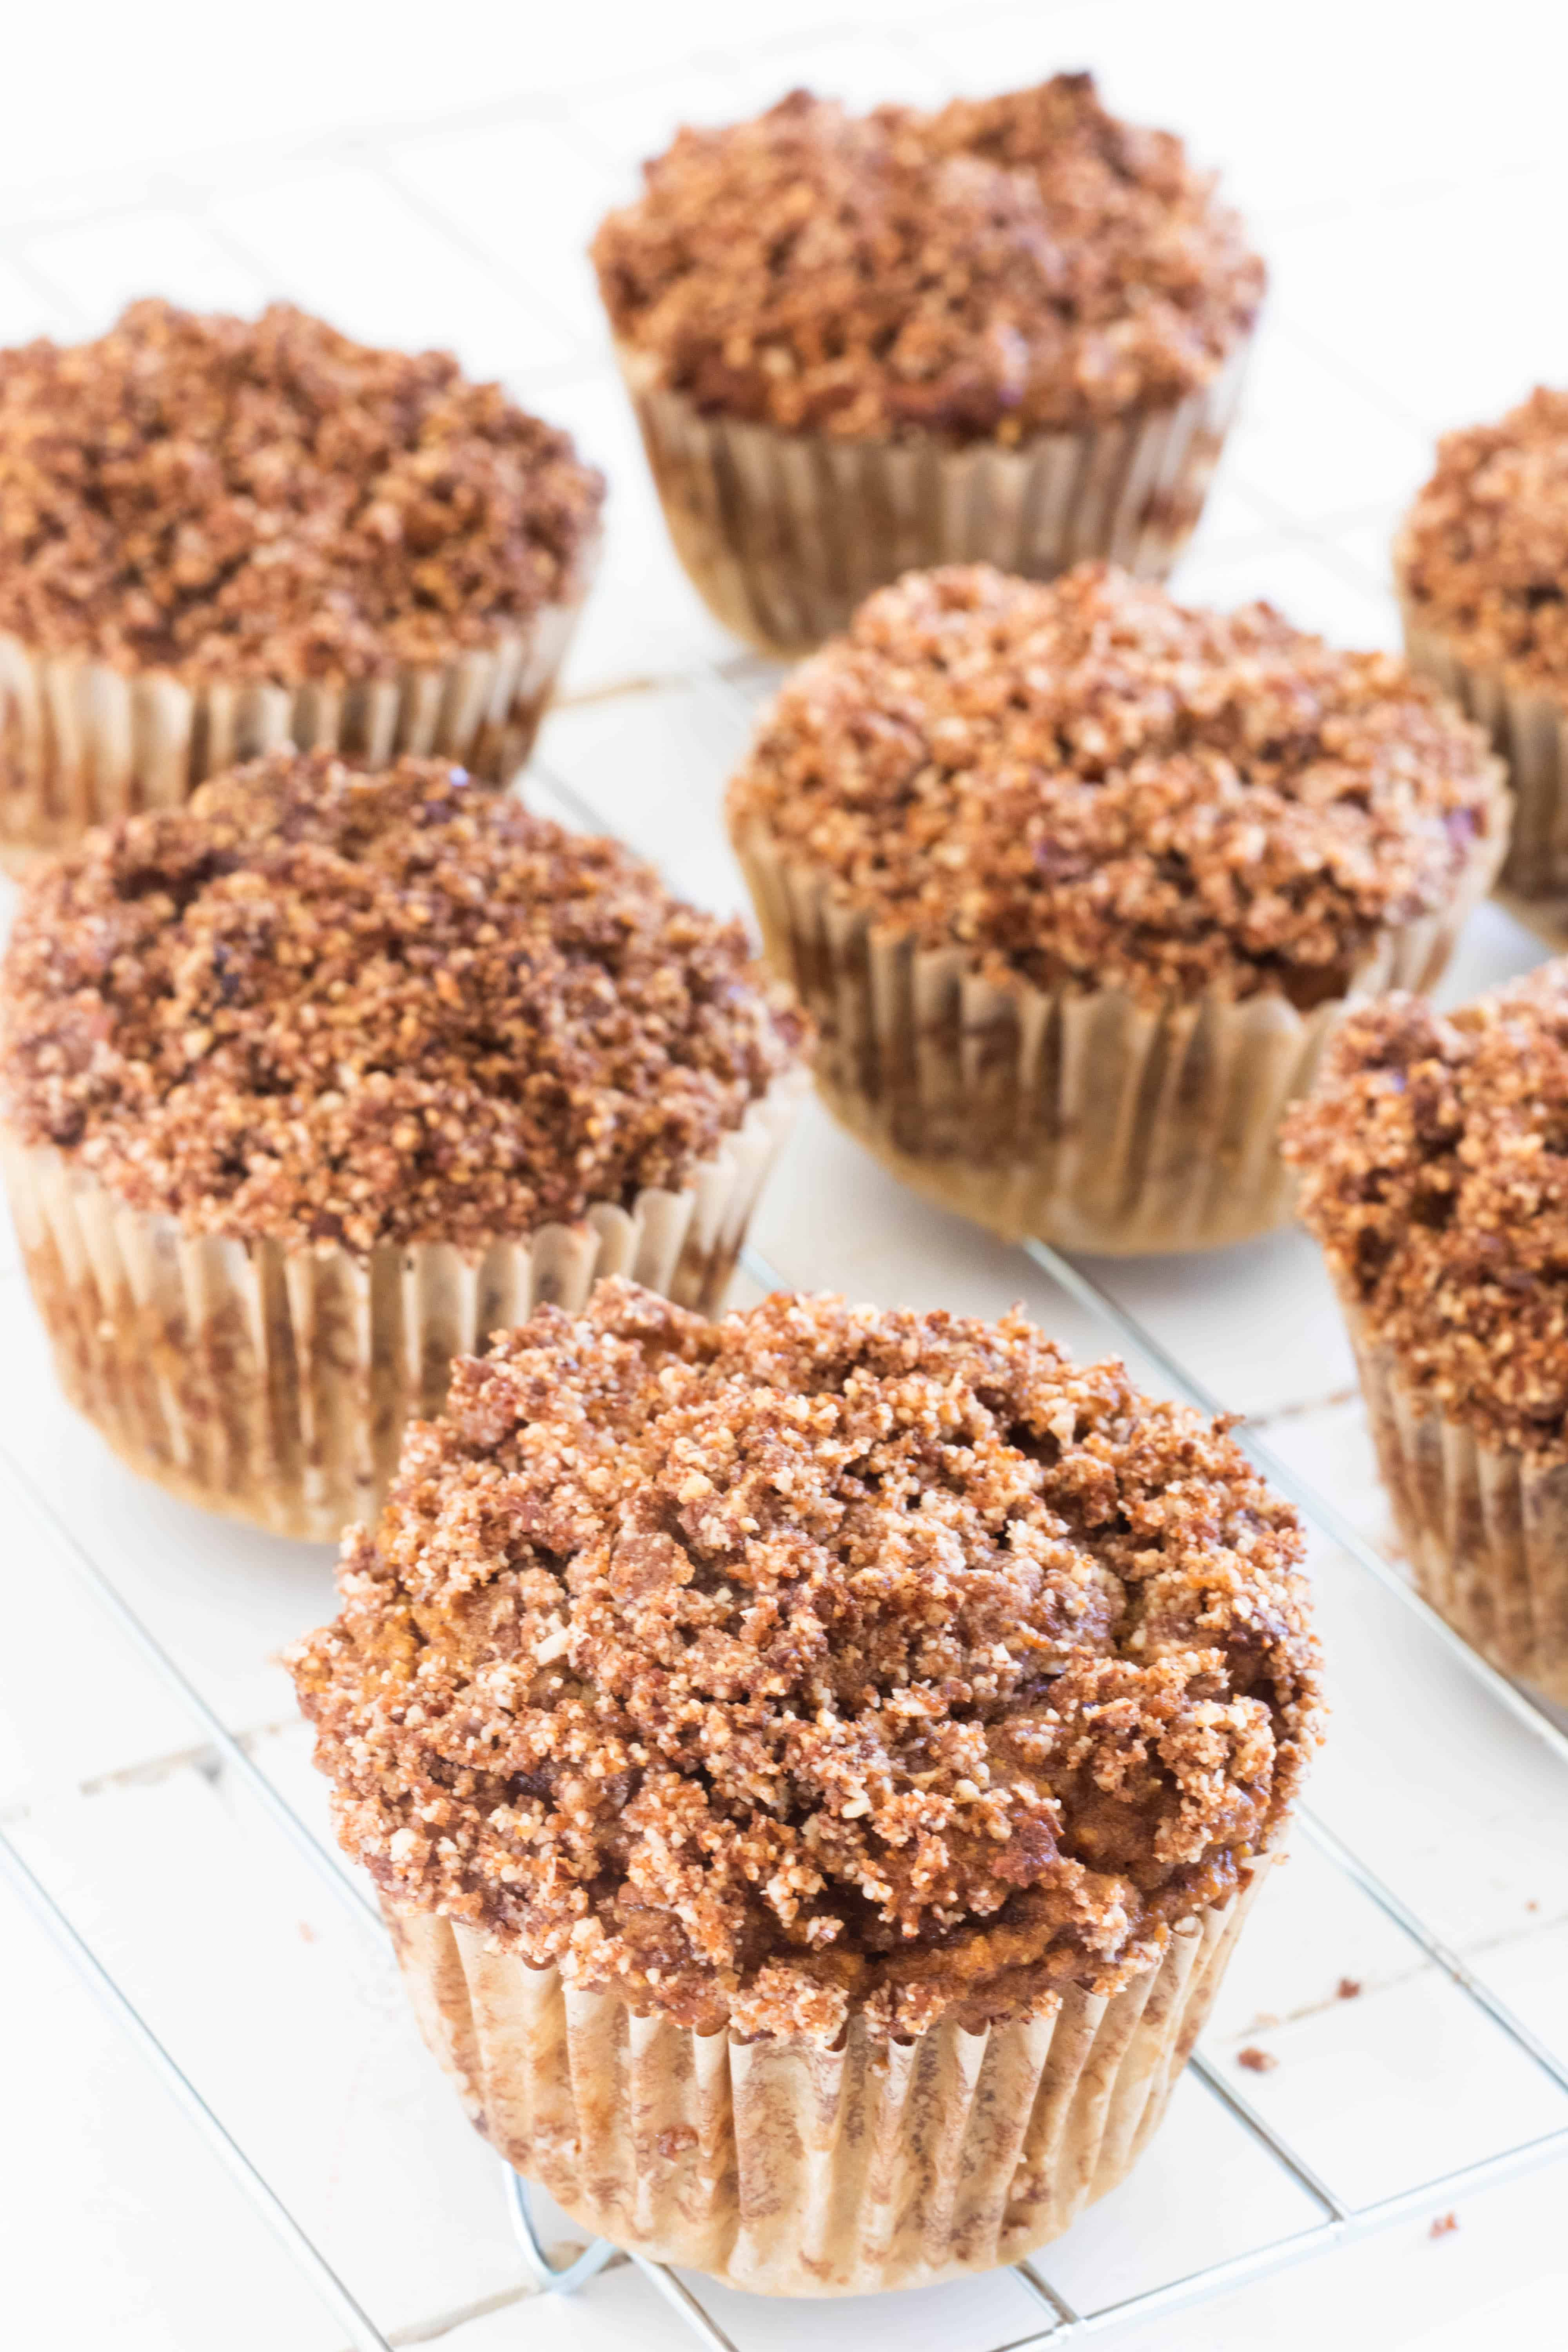 muffins with crumble topping on drying rack on white table